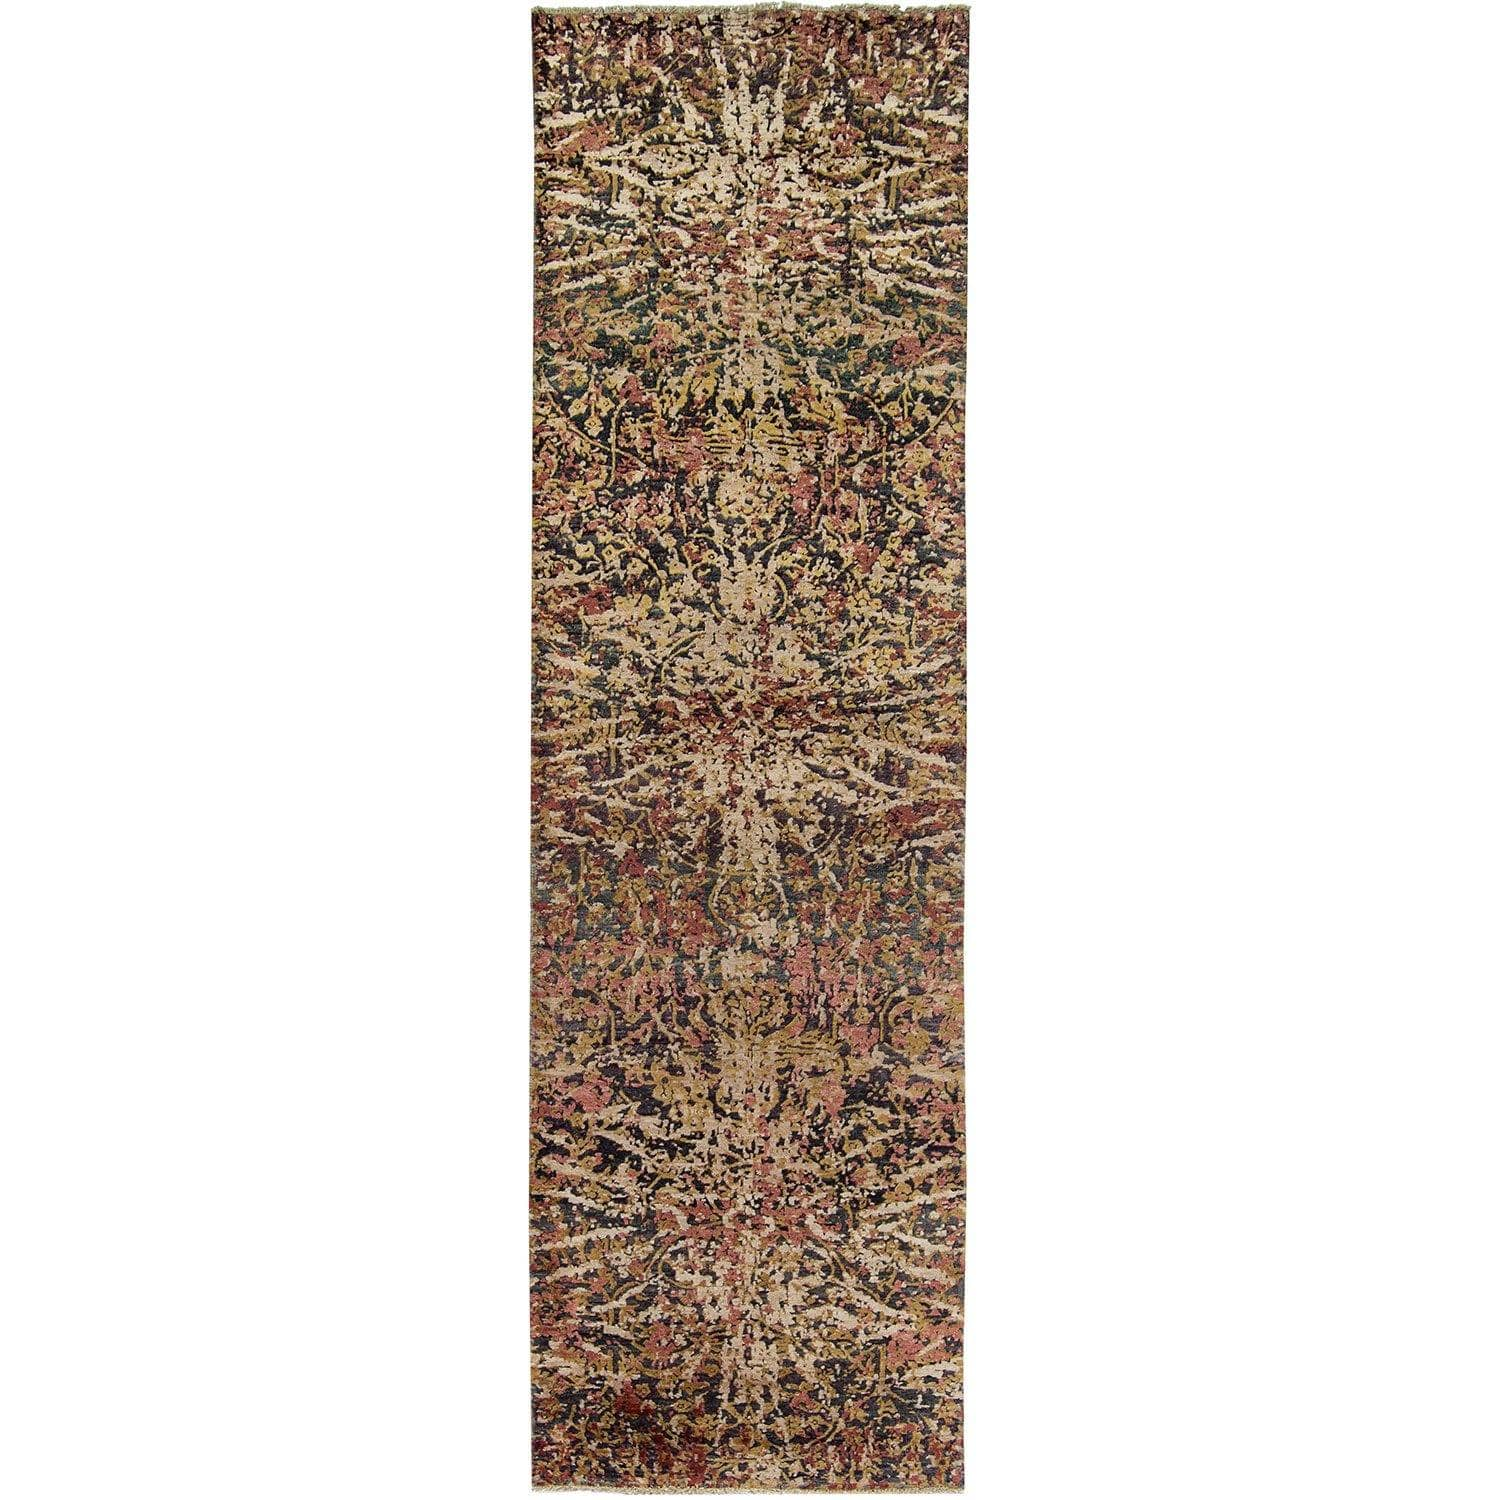 Contemporary Hand-knotted NZ Wool Runner 76cm x 304cm Persian-Rug | House-of-Haghi | NewMarket | Auckland | NZ | Handmade Persian Rugs | Hand Knotted Persian Rugs